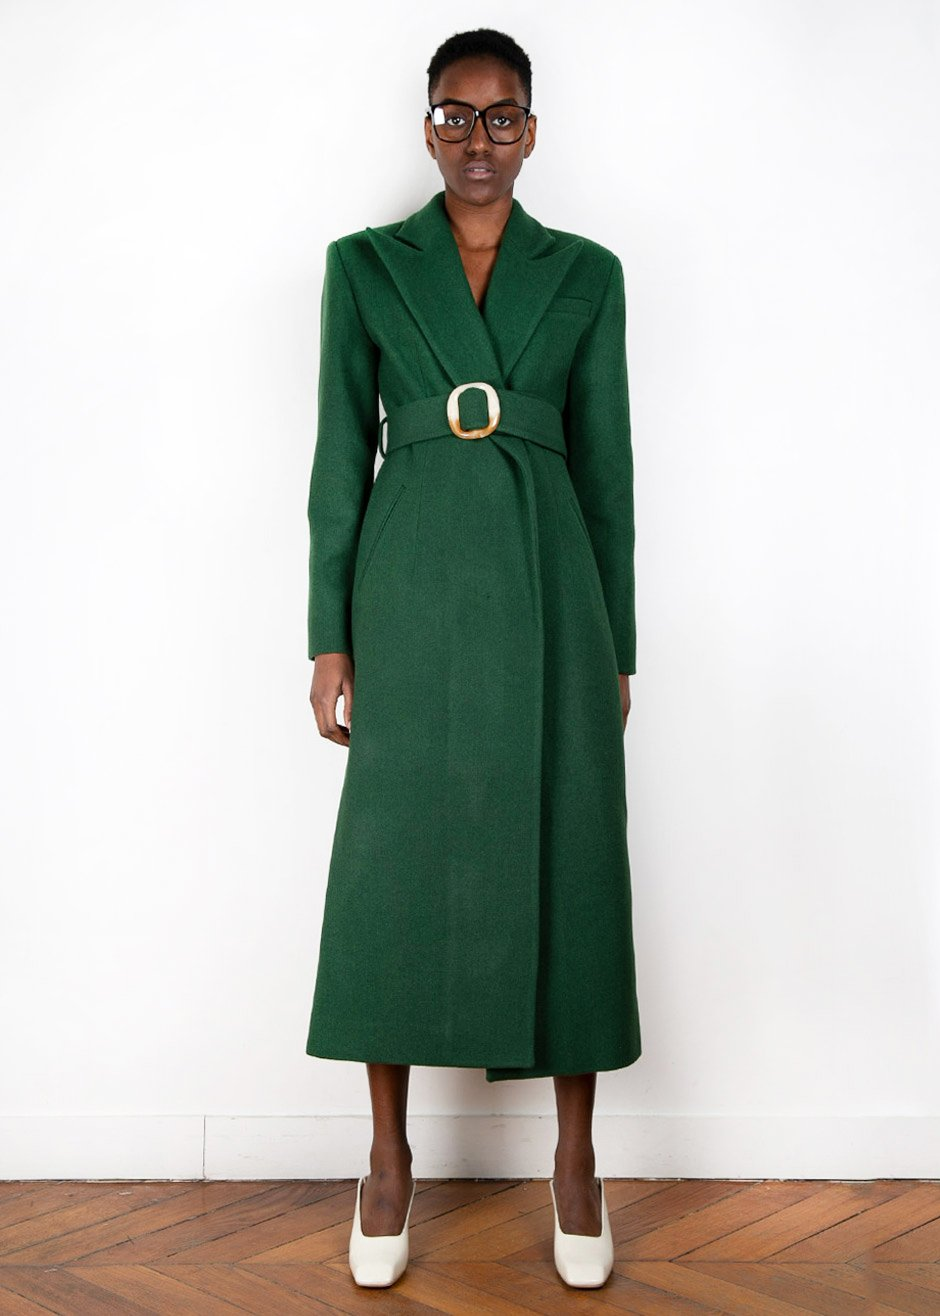 Frankie-Forest-Green-Wool-Blend-Belted-Coat-by-Materiel-Tbilisi-IMG_6671_a189b9d8-8951-441e-8087-2f54c4fb6e06